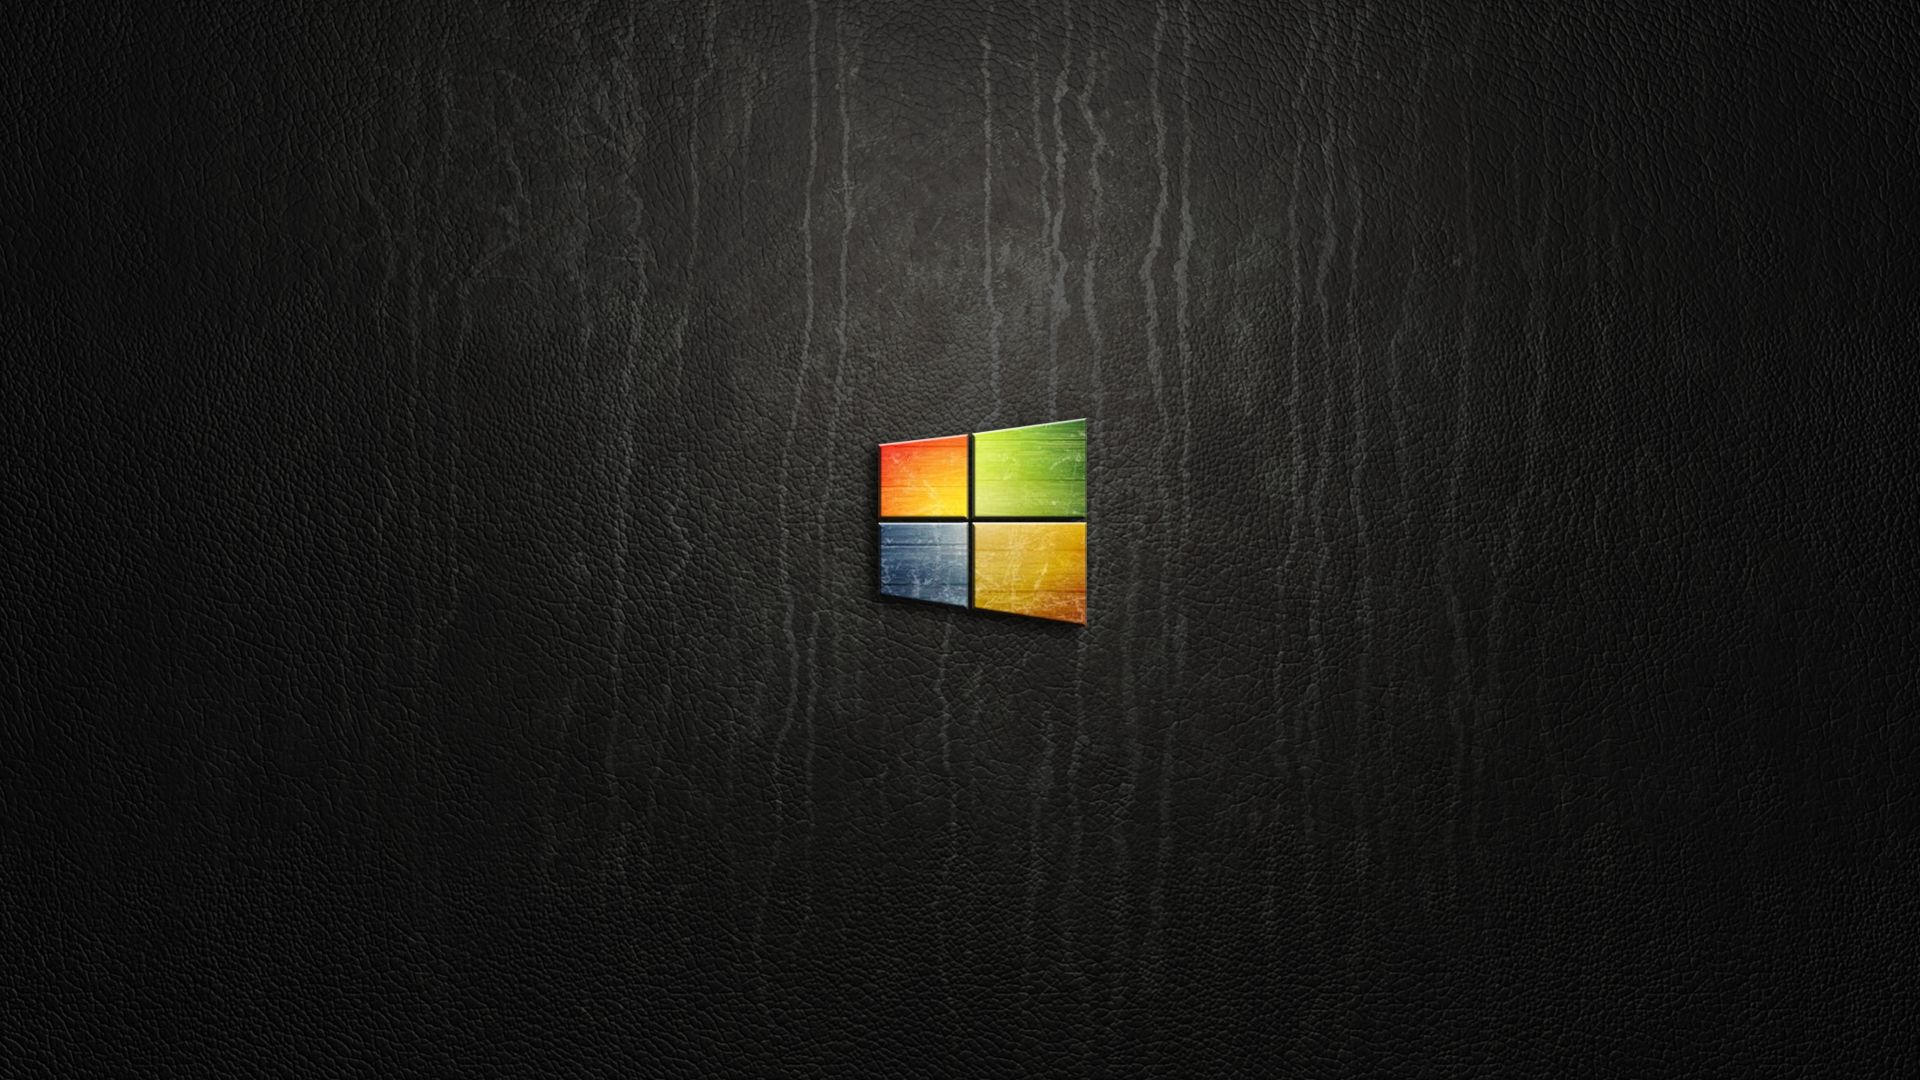 Windows 1080p Wallpaper Posted By Sarah Peltier